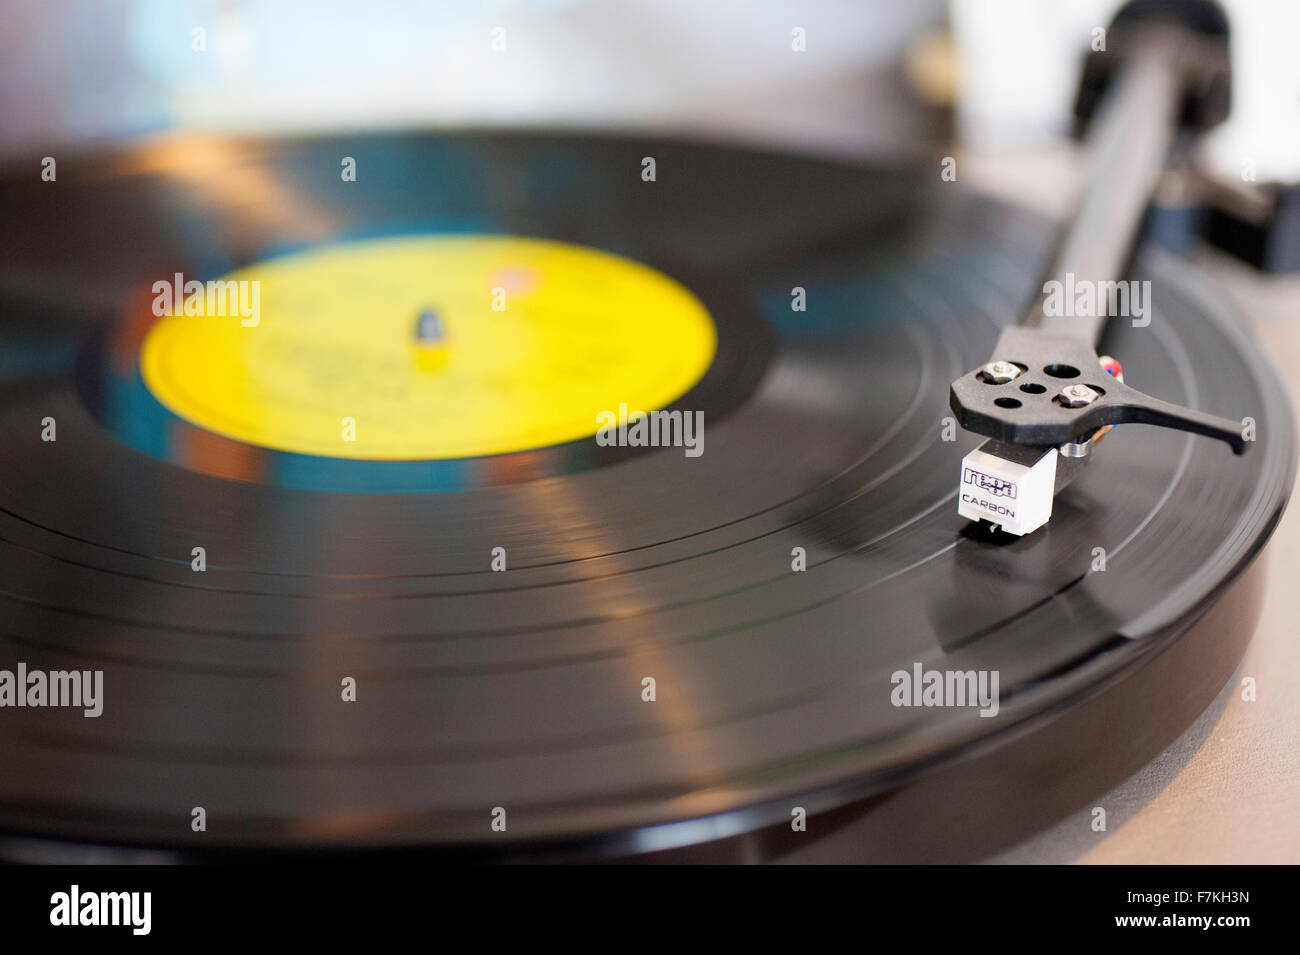 A vinyl record playing on a turntable - Stock Image